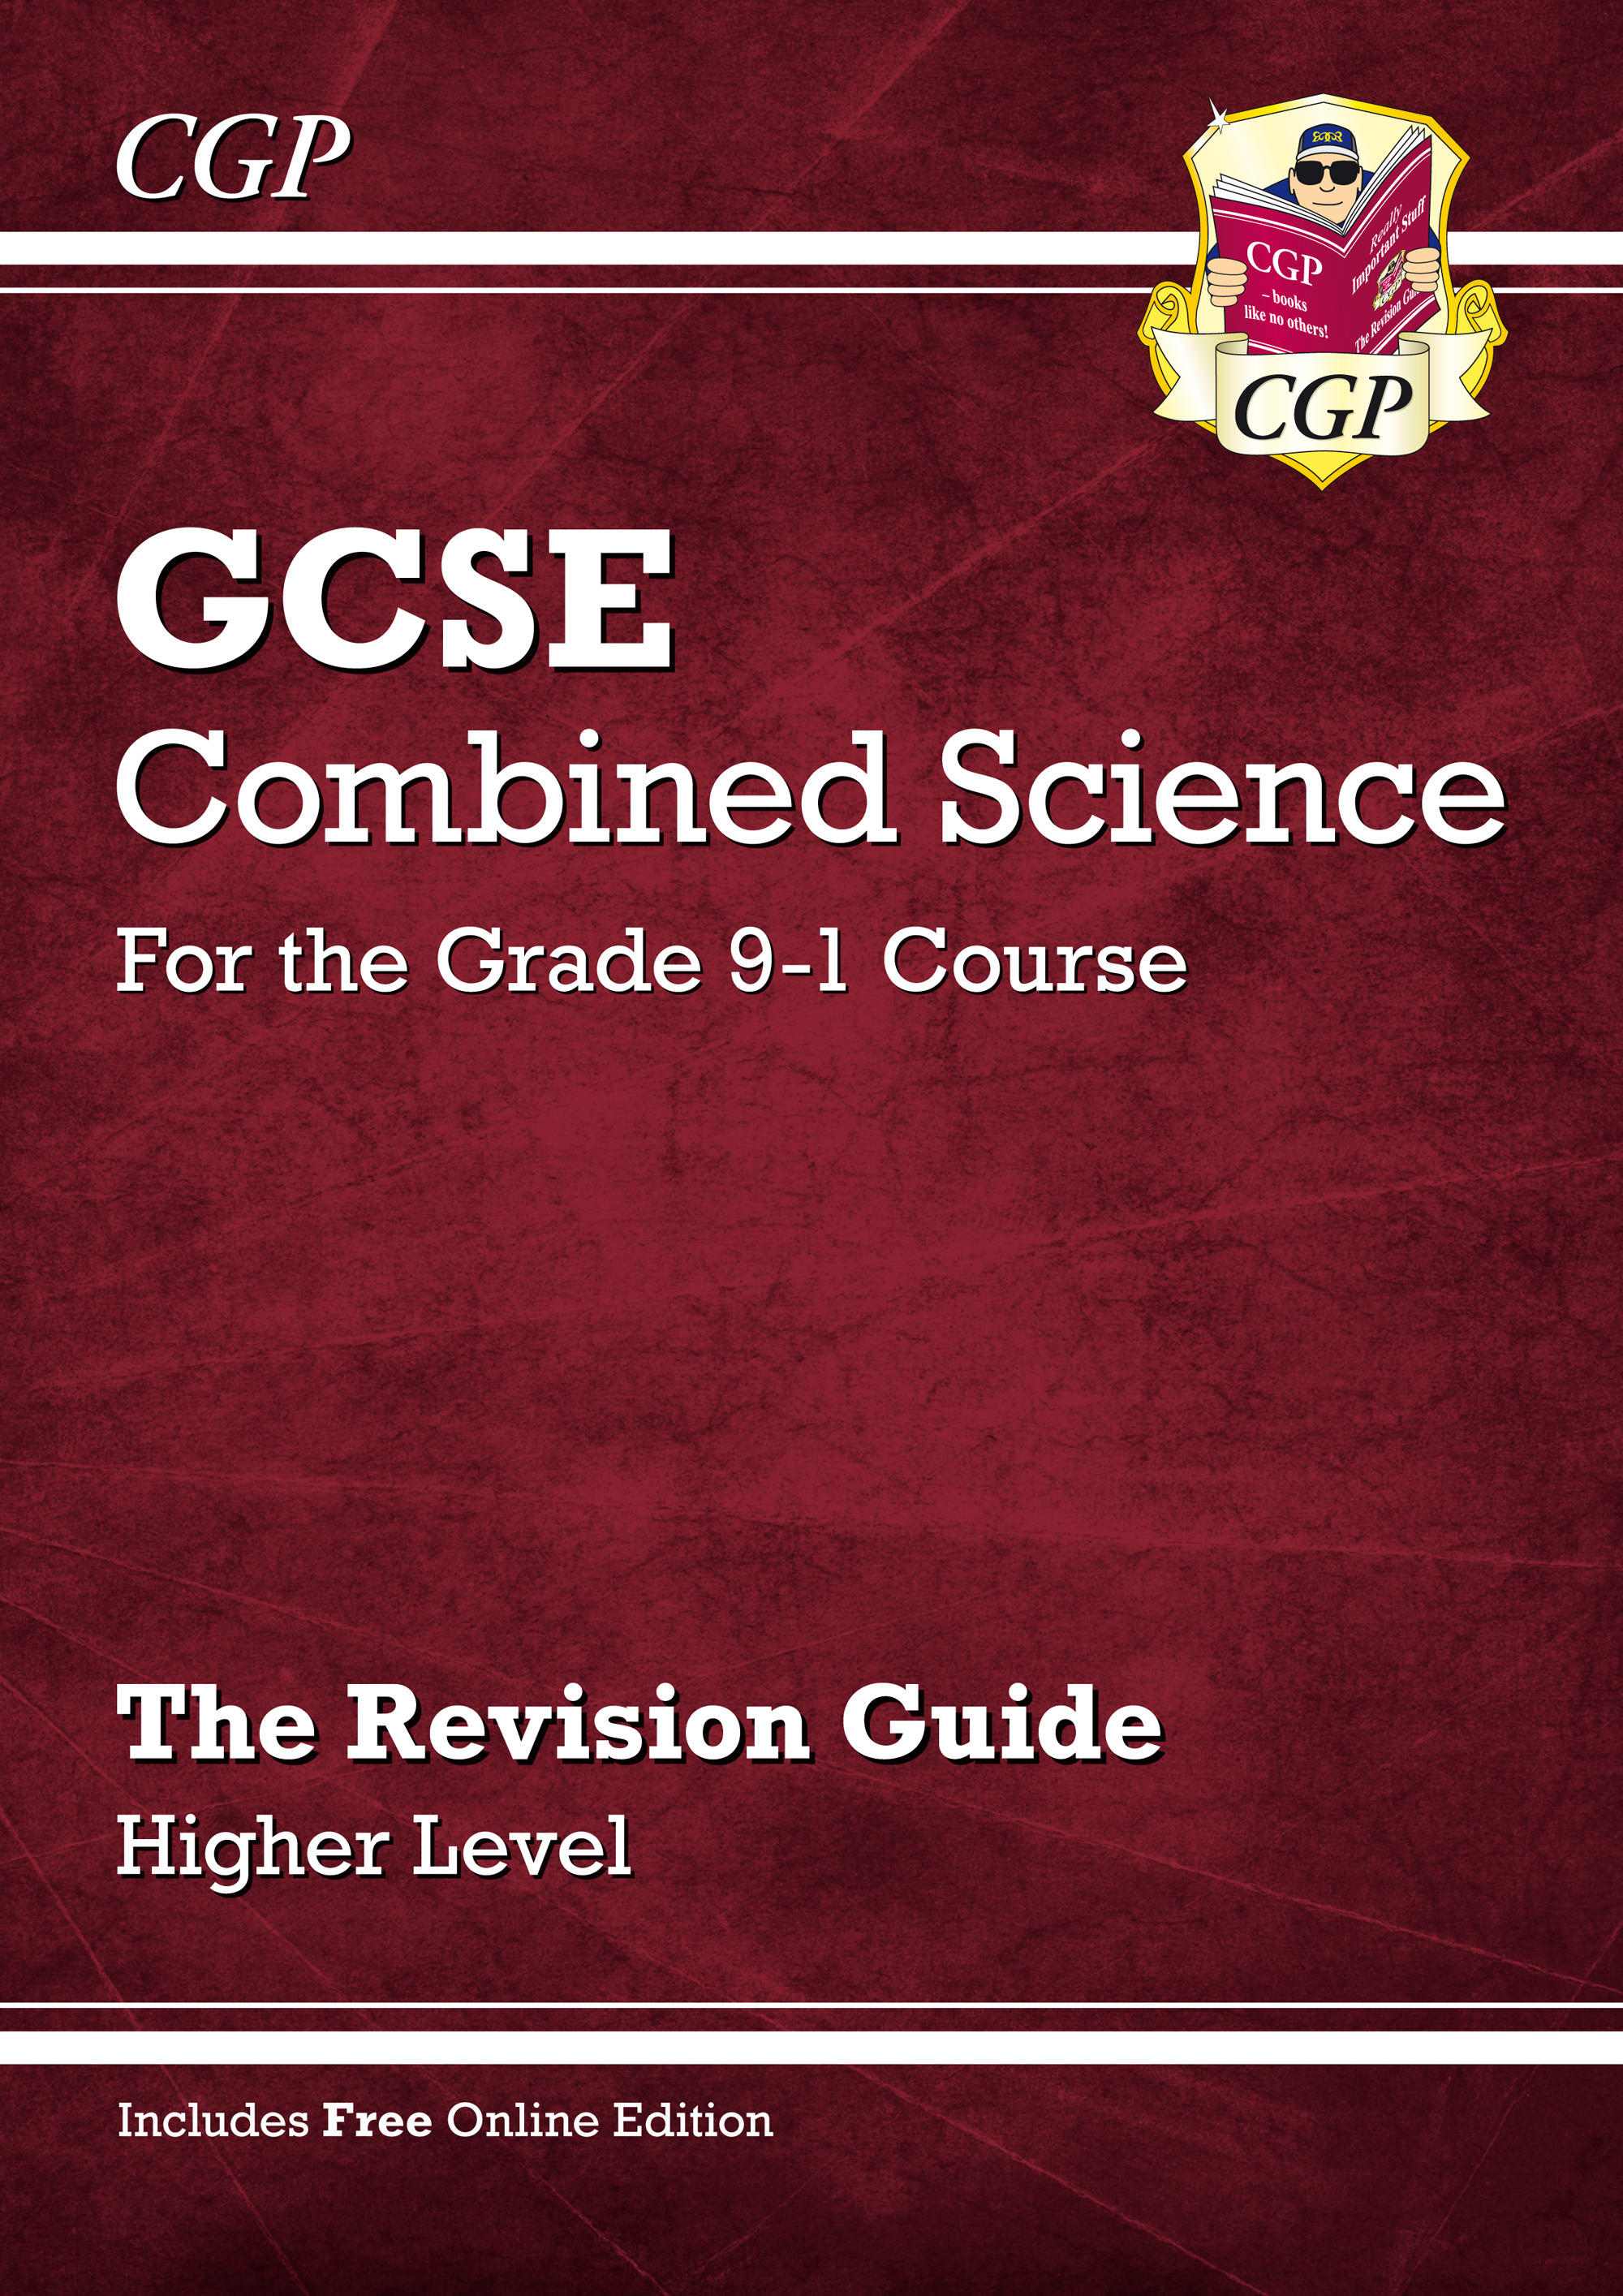 SHR45 - Grade 9-1 GCSE Combined Science: Revision Guide with Online Edition - Higher